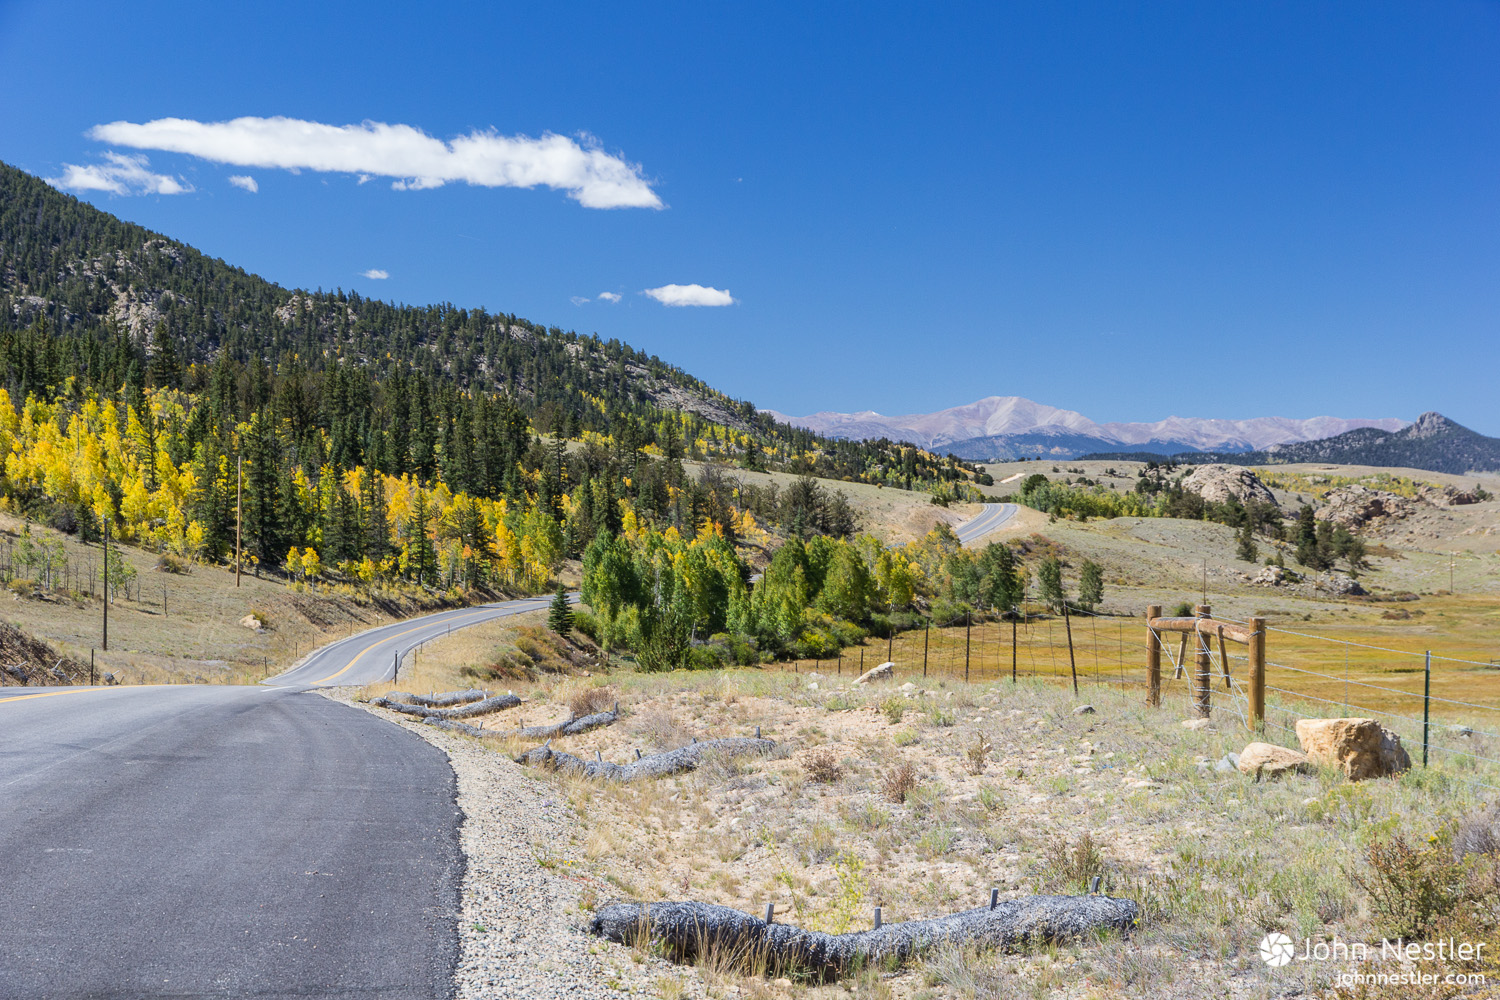 Somewhere past the town of  Tarryall, CO  during the Lost Creek Wilderness detour. Miles flew by on the paved roads and gorgeous views like this kept me going.